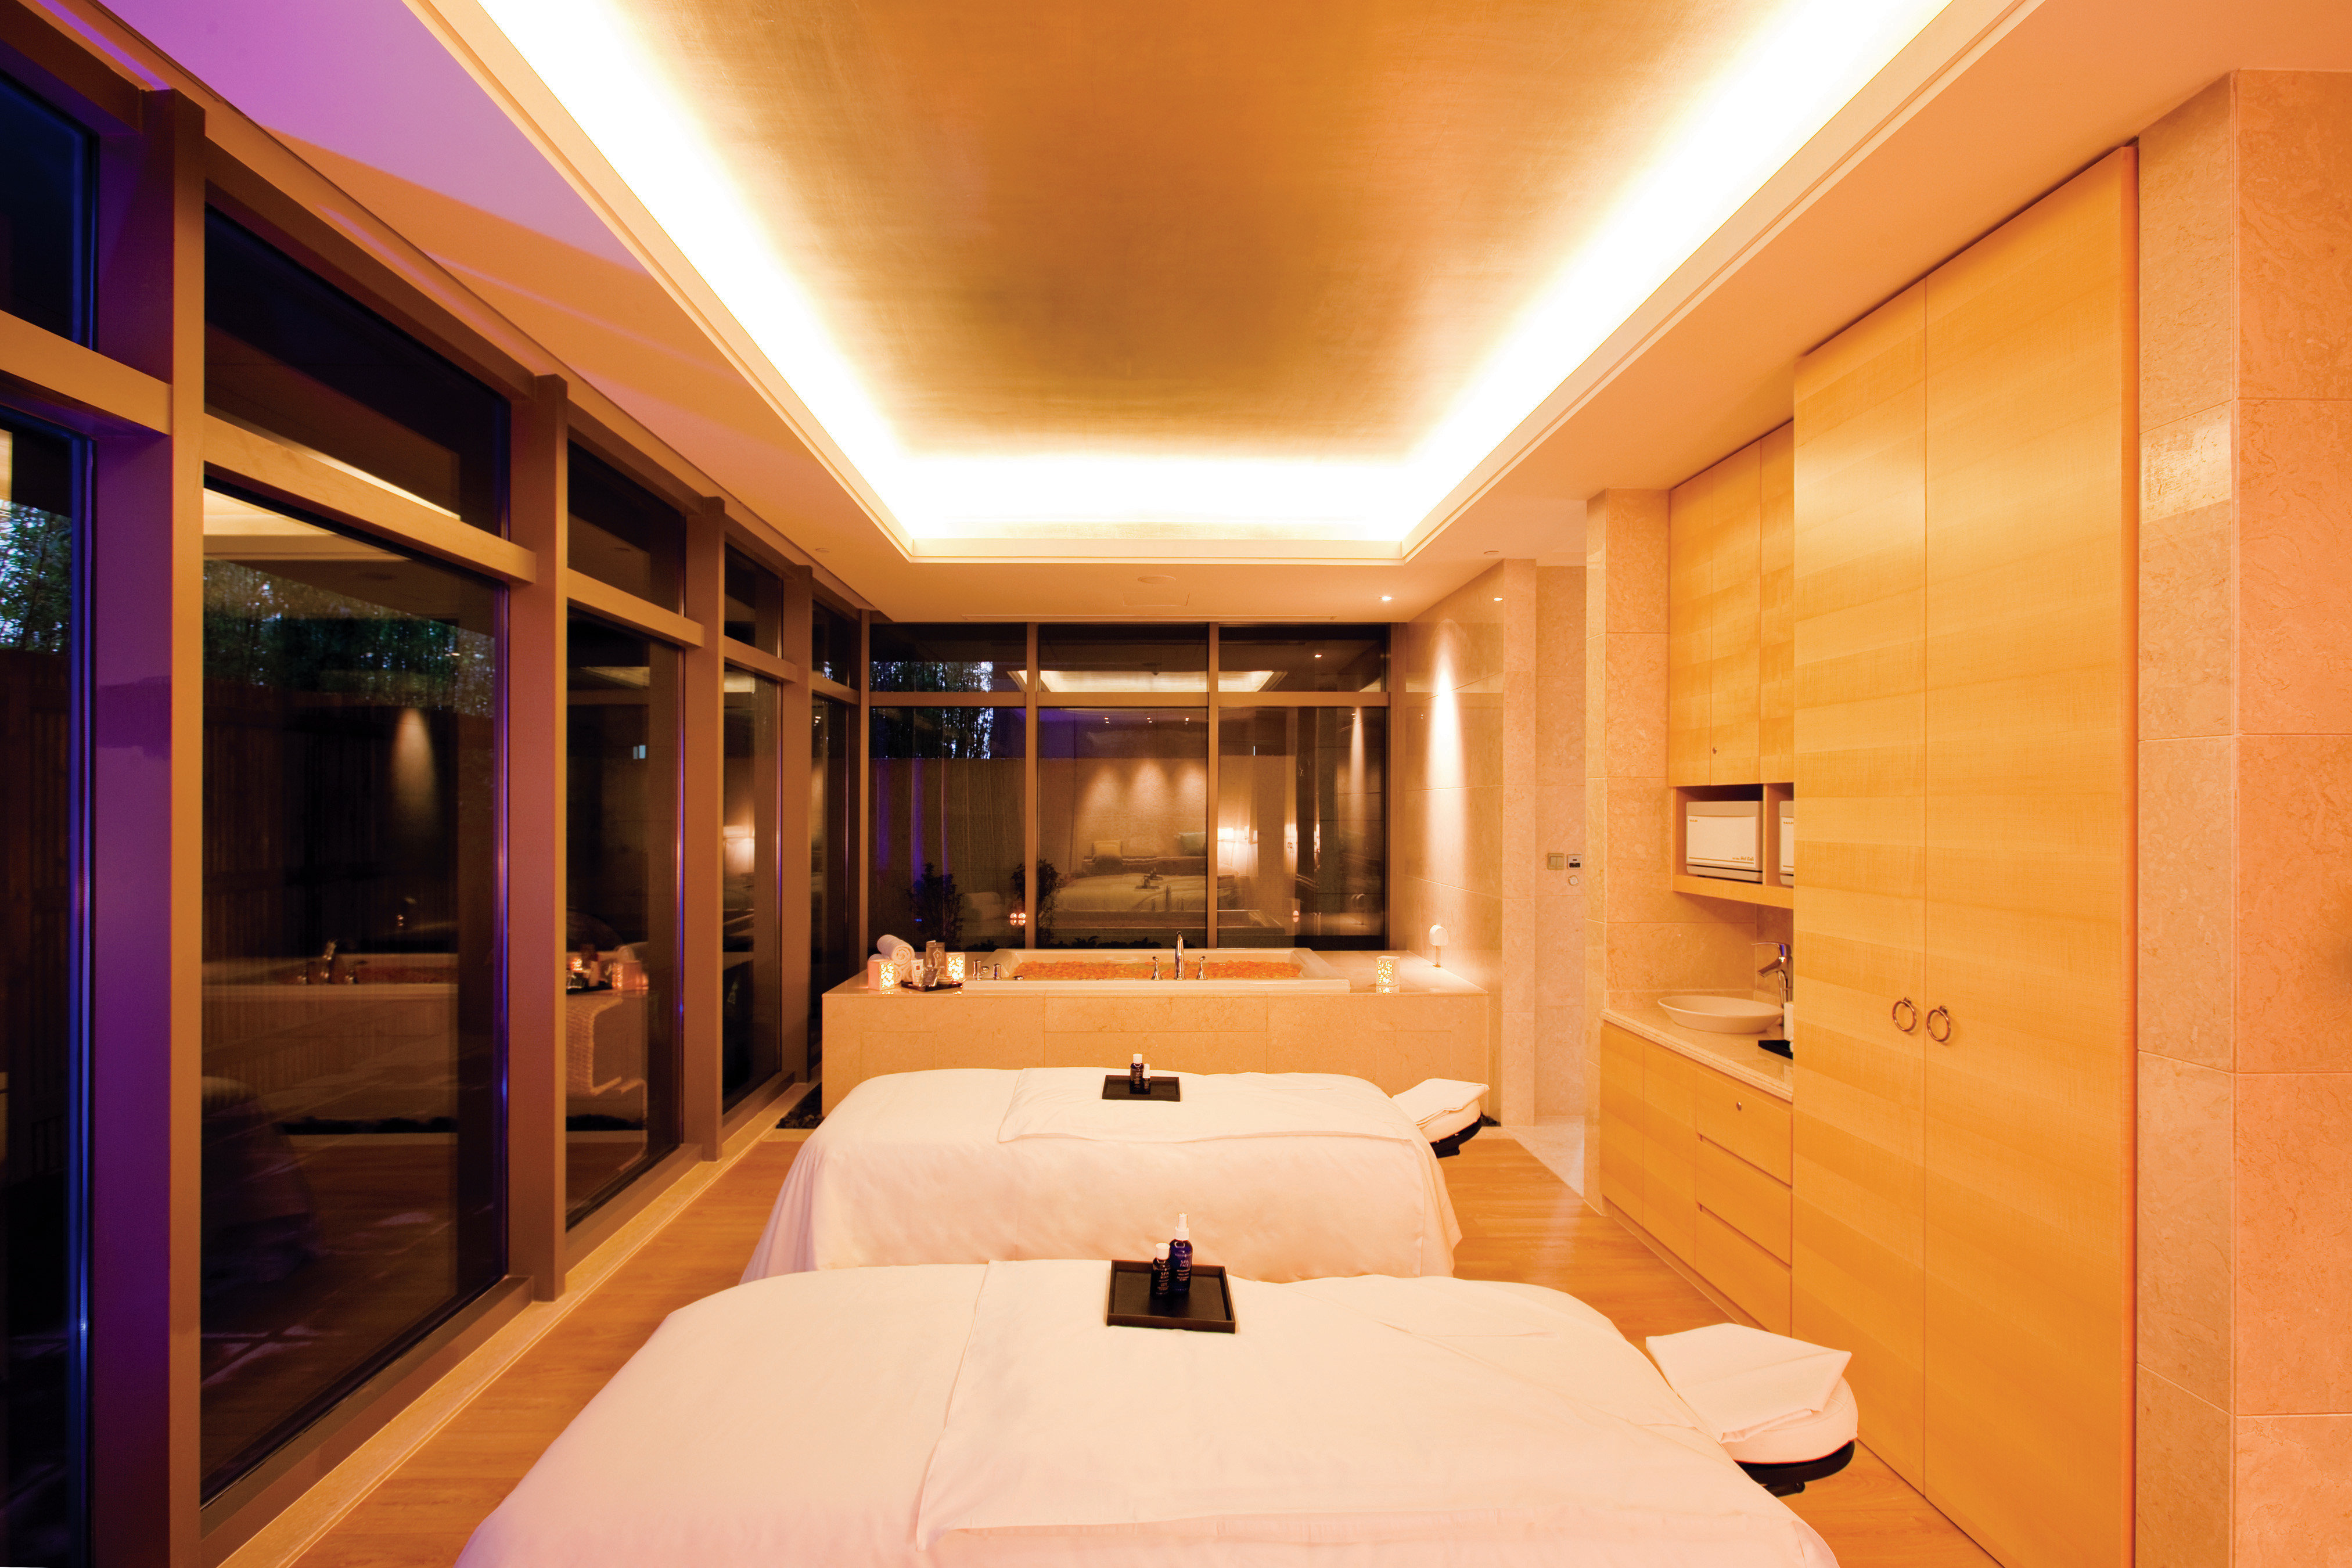 Hip Hot tub/Jacuzzi Luxury Spa Bedroom yacht passenger ship Boat Suite